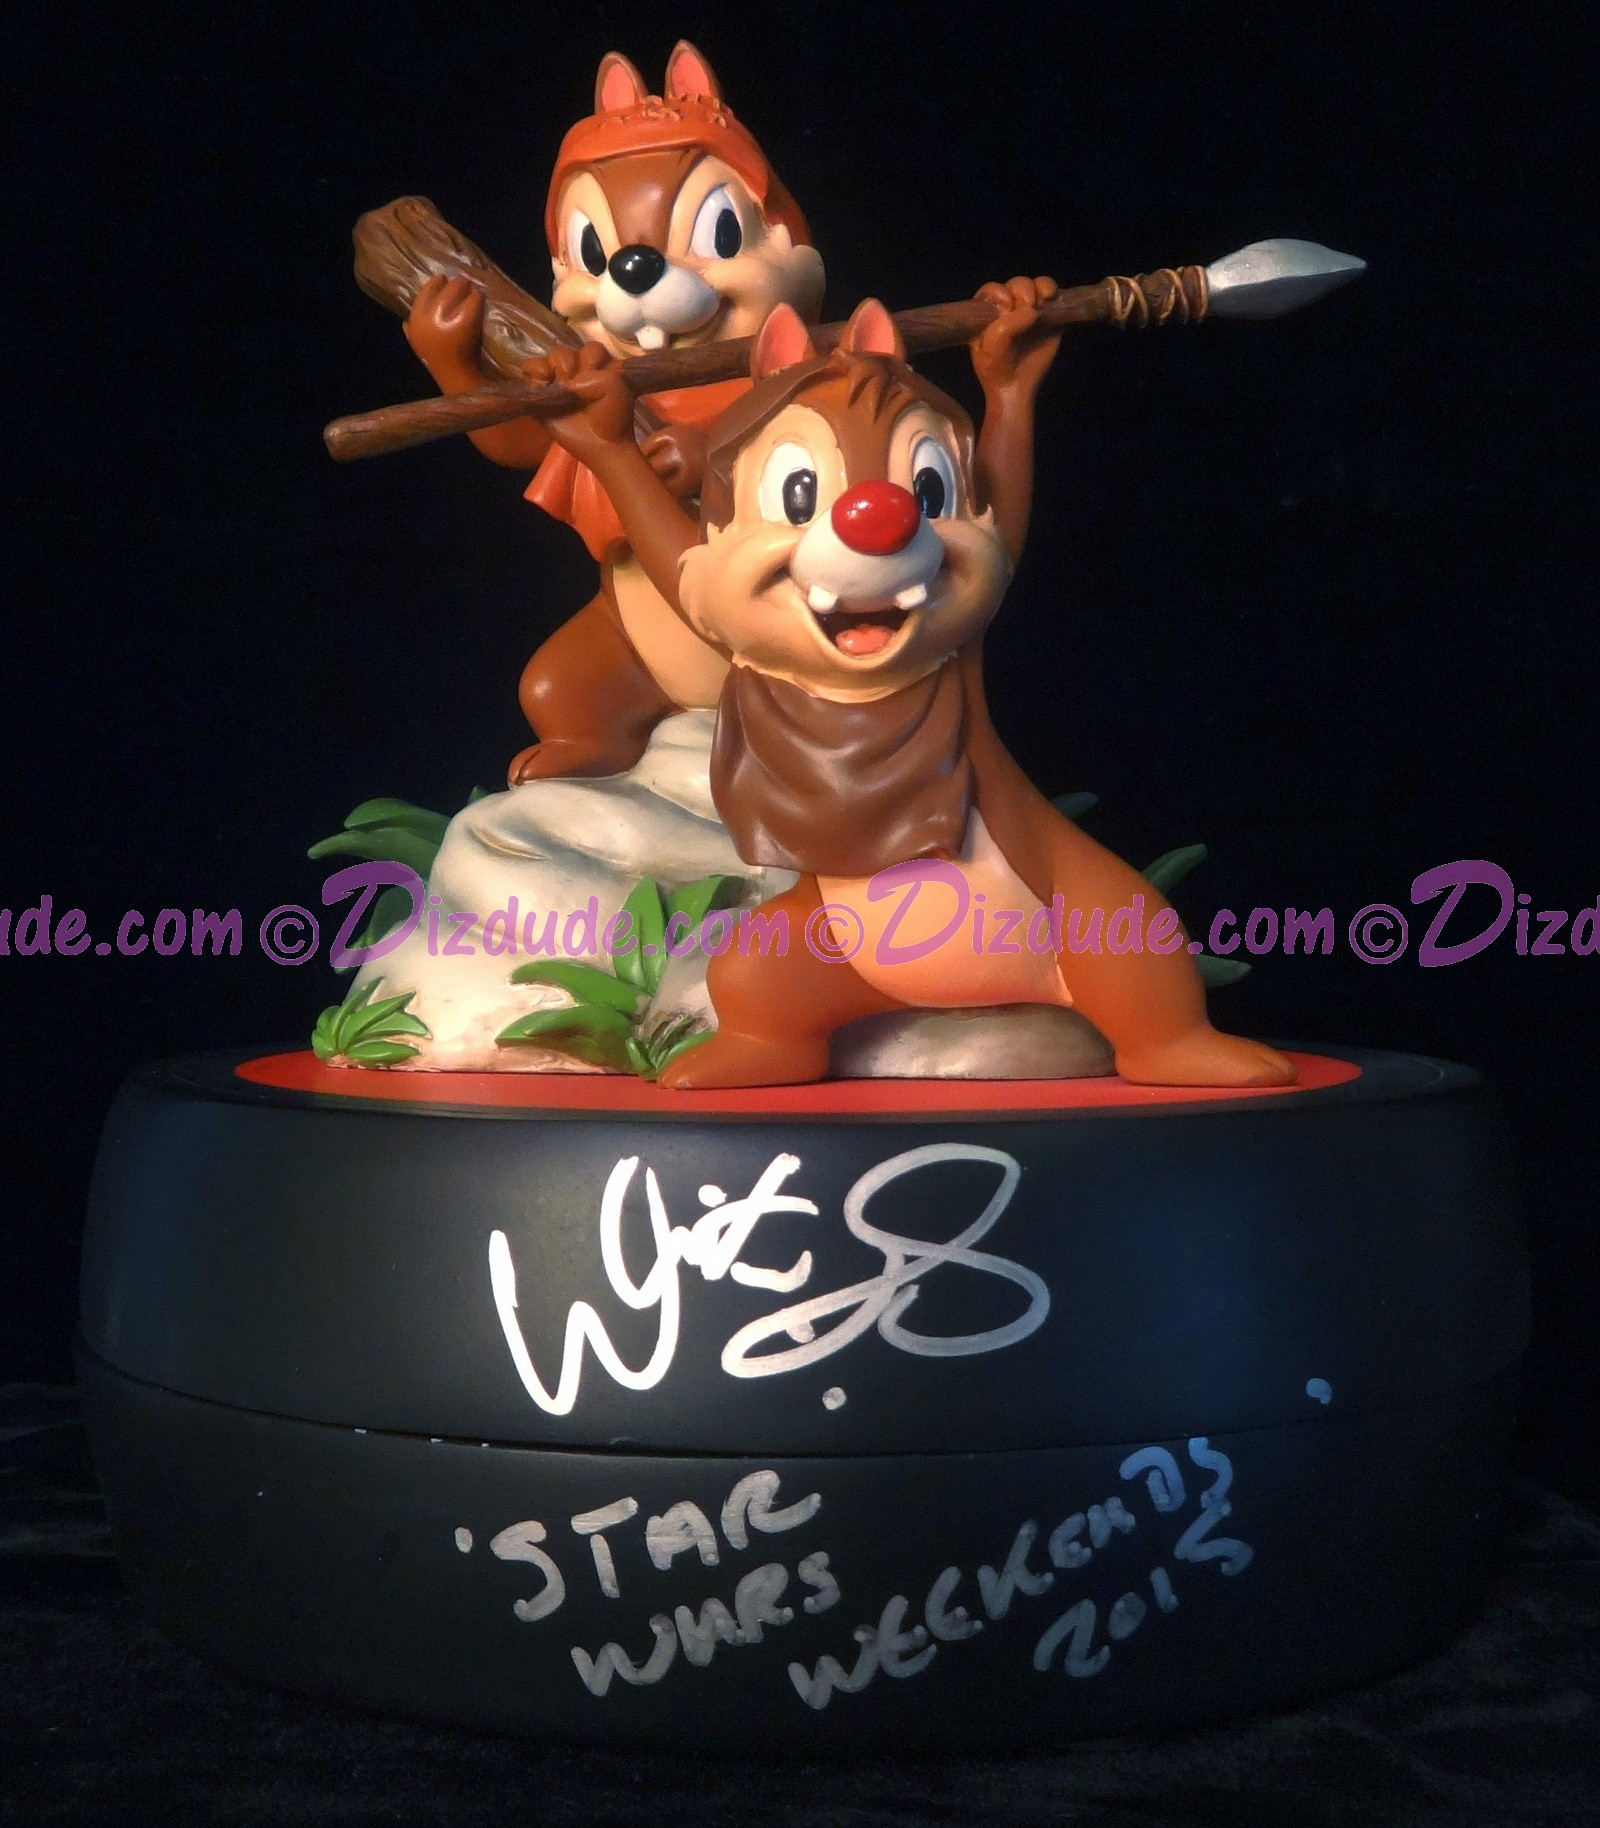 Autographed By Warwick Davis Chip 'N' Dale as Ewoks Medium Big Fig with pin LE 1977 - Star Wars Weekends © DIZDUDE.com